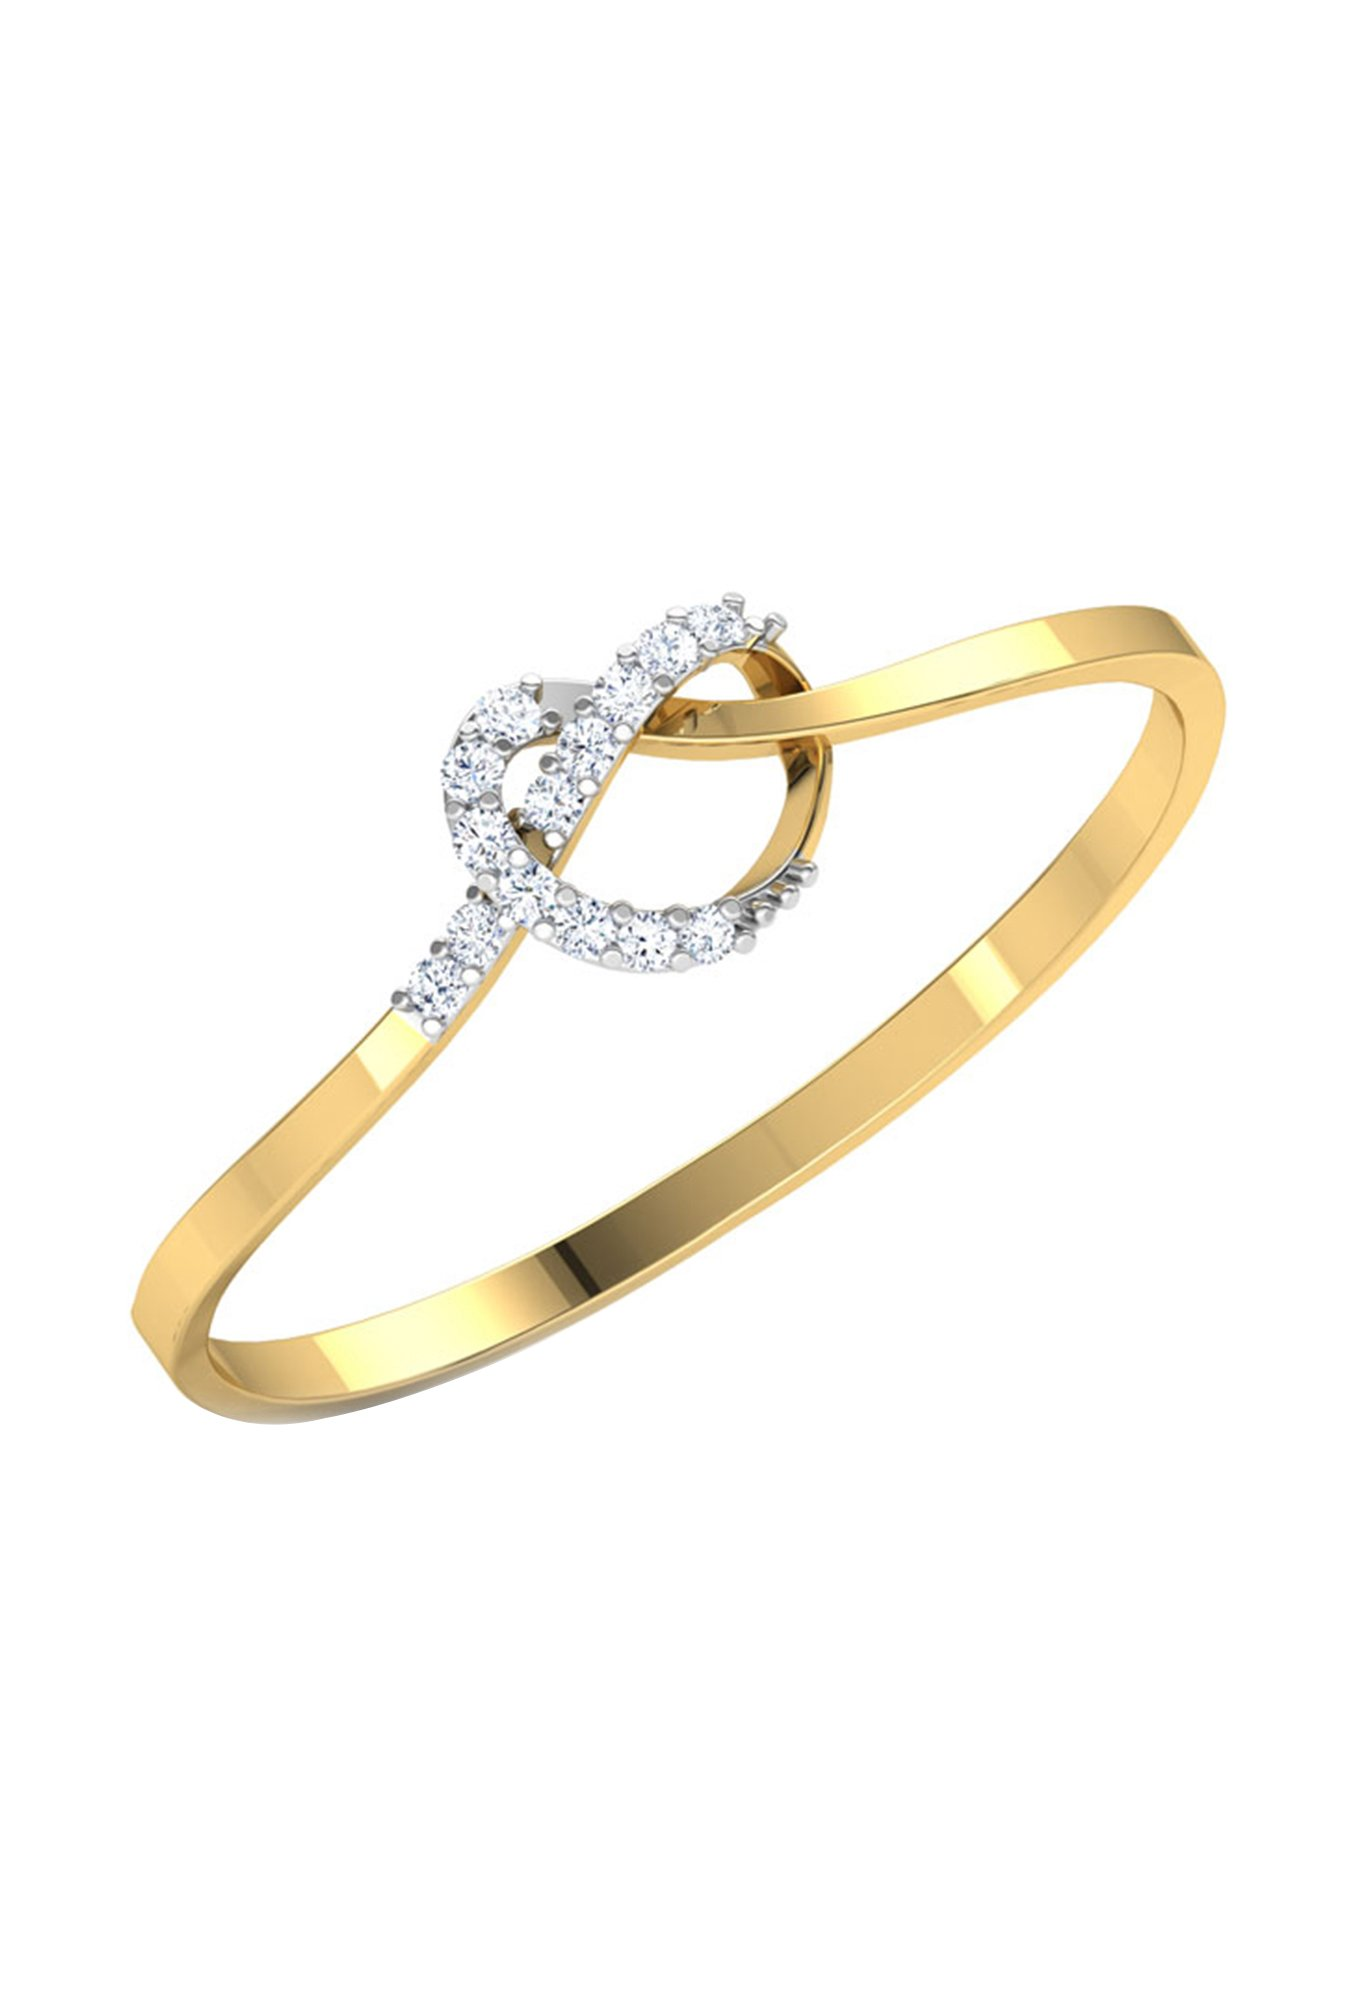 ring pave diamond solitaire knot forevermark degem encordia